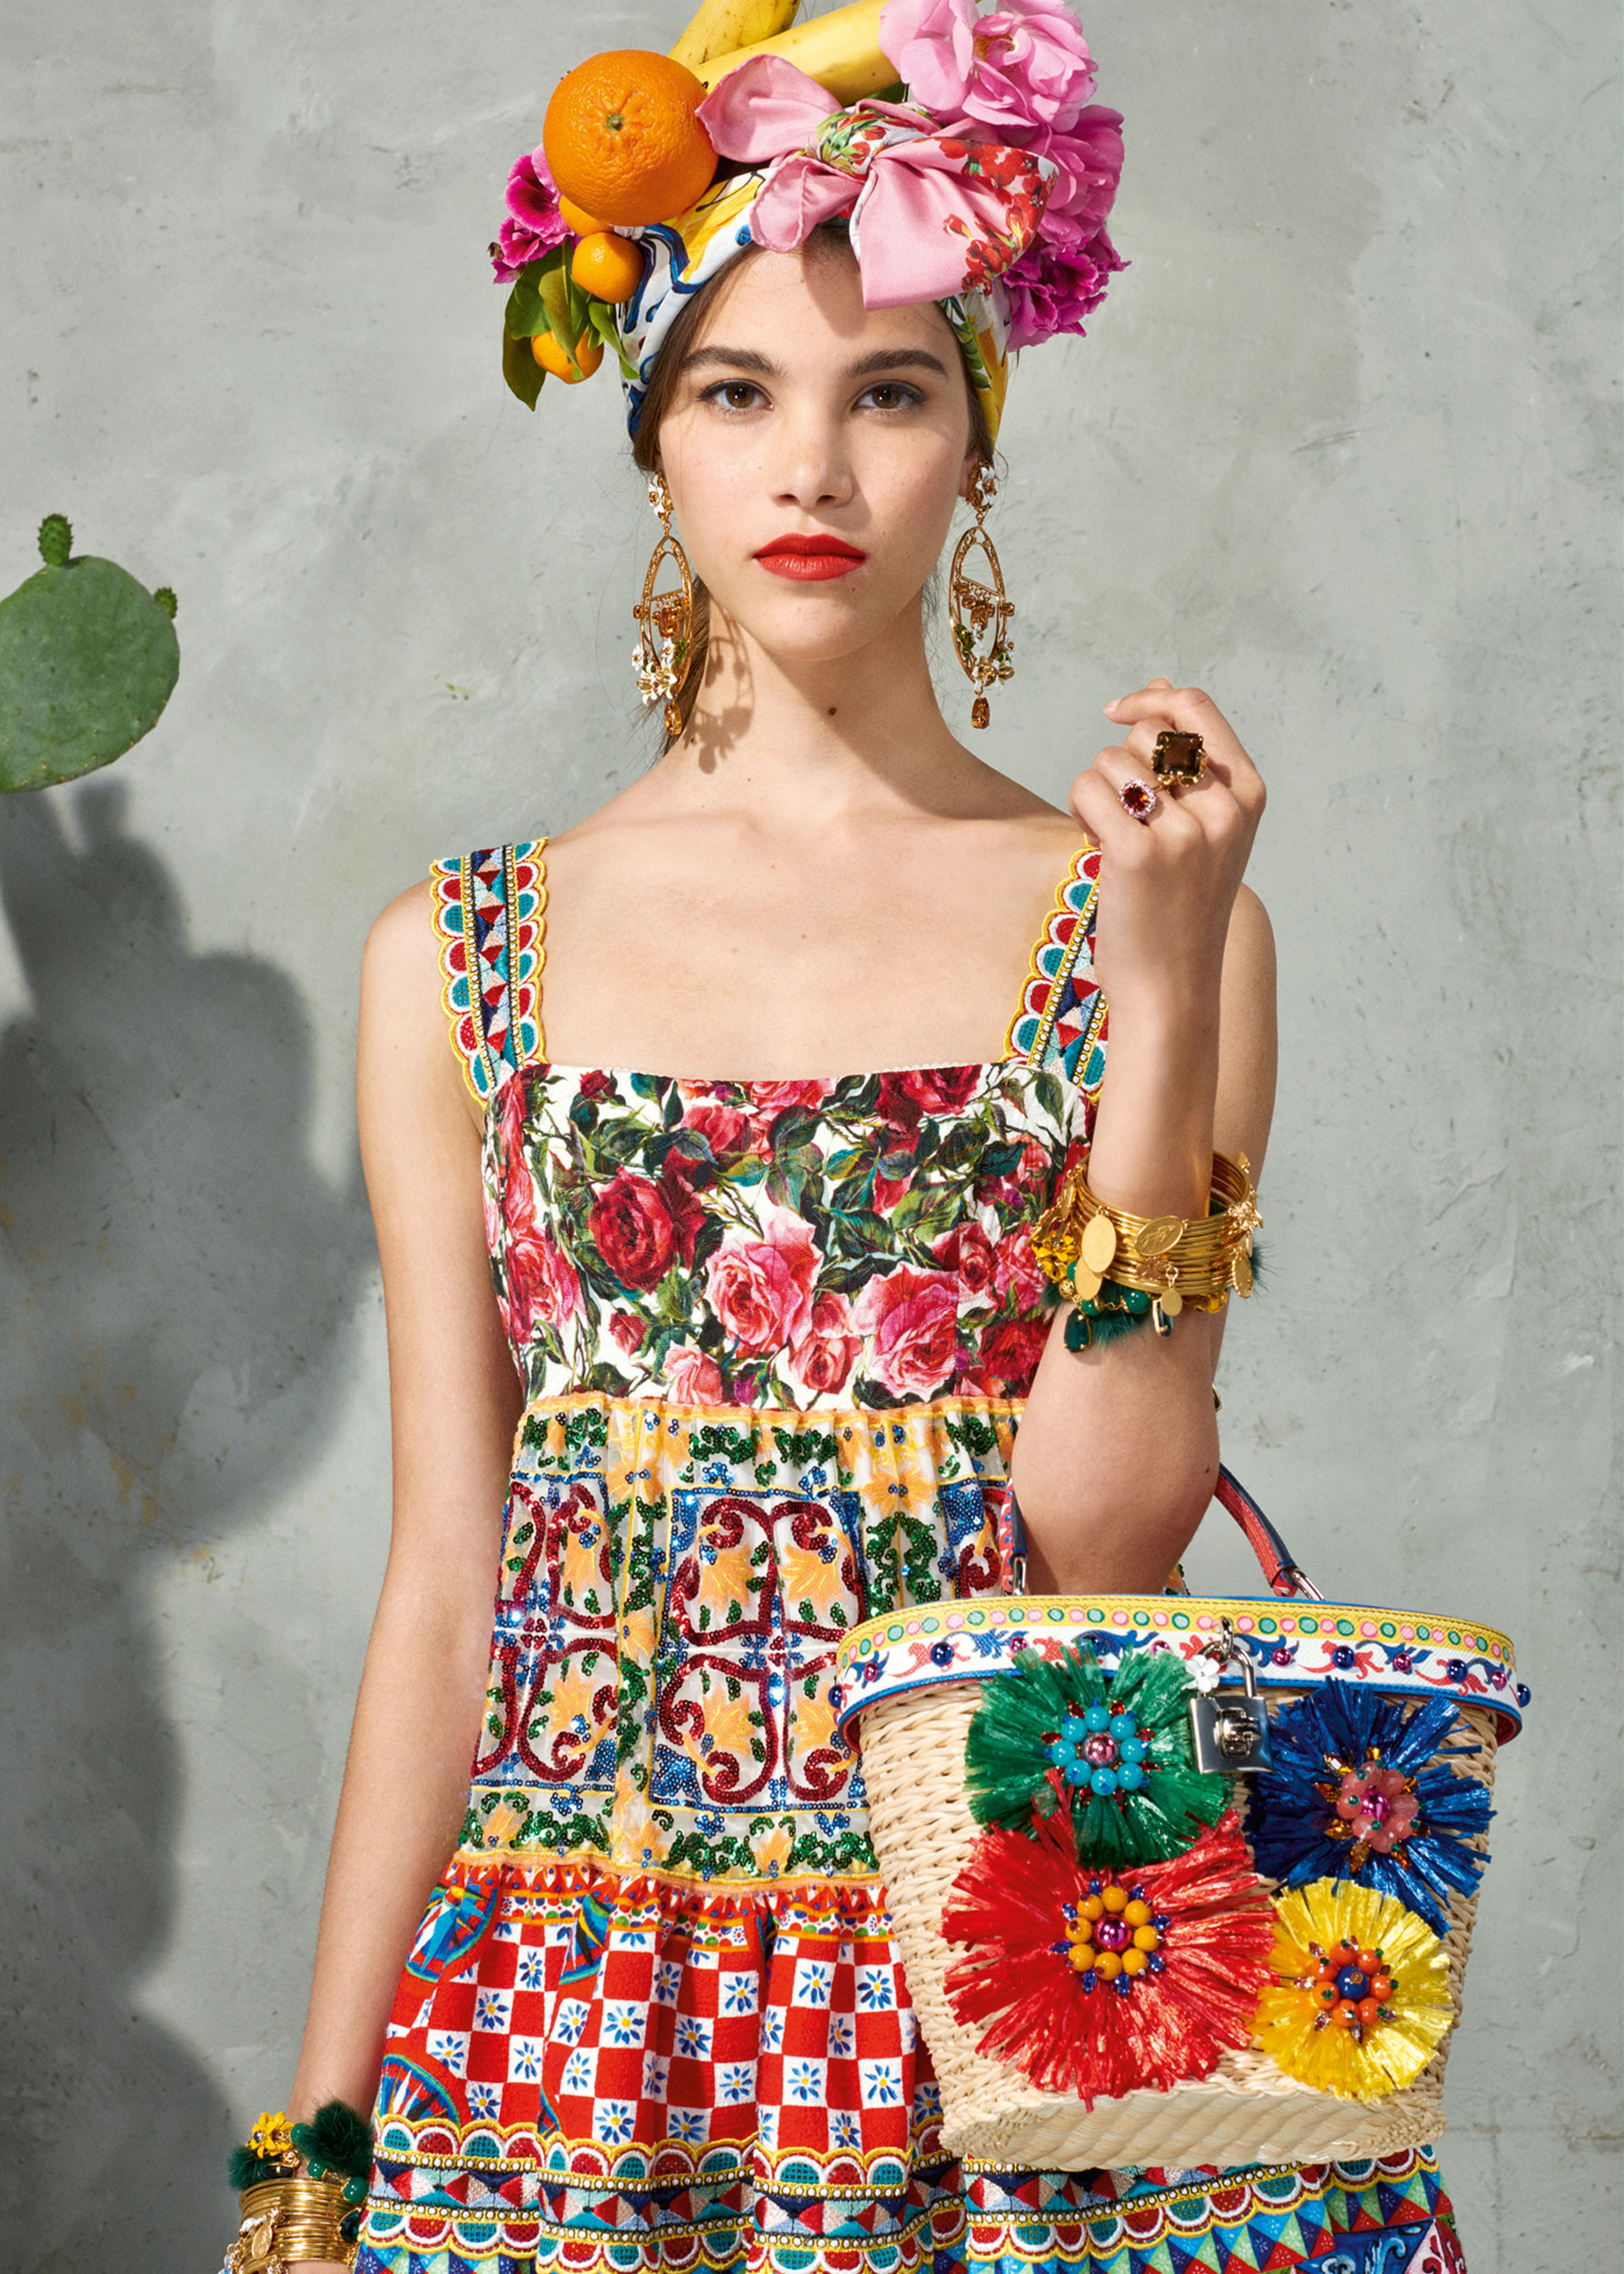 dolce and gabbana summer 2017 woman collection 111 - Dolce & Gabbana/Spring Summer 2017 Collection/ Mambo